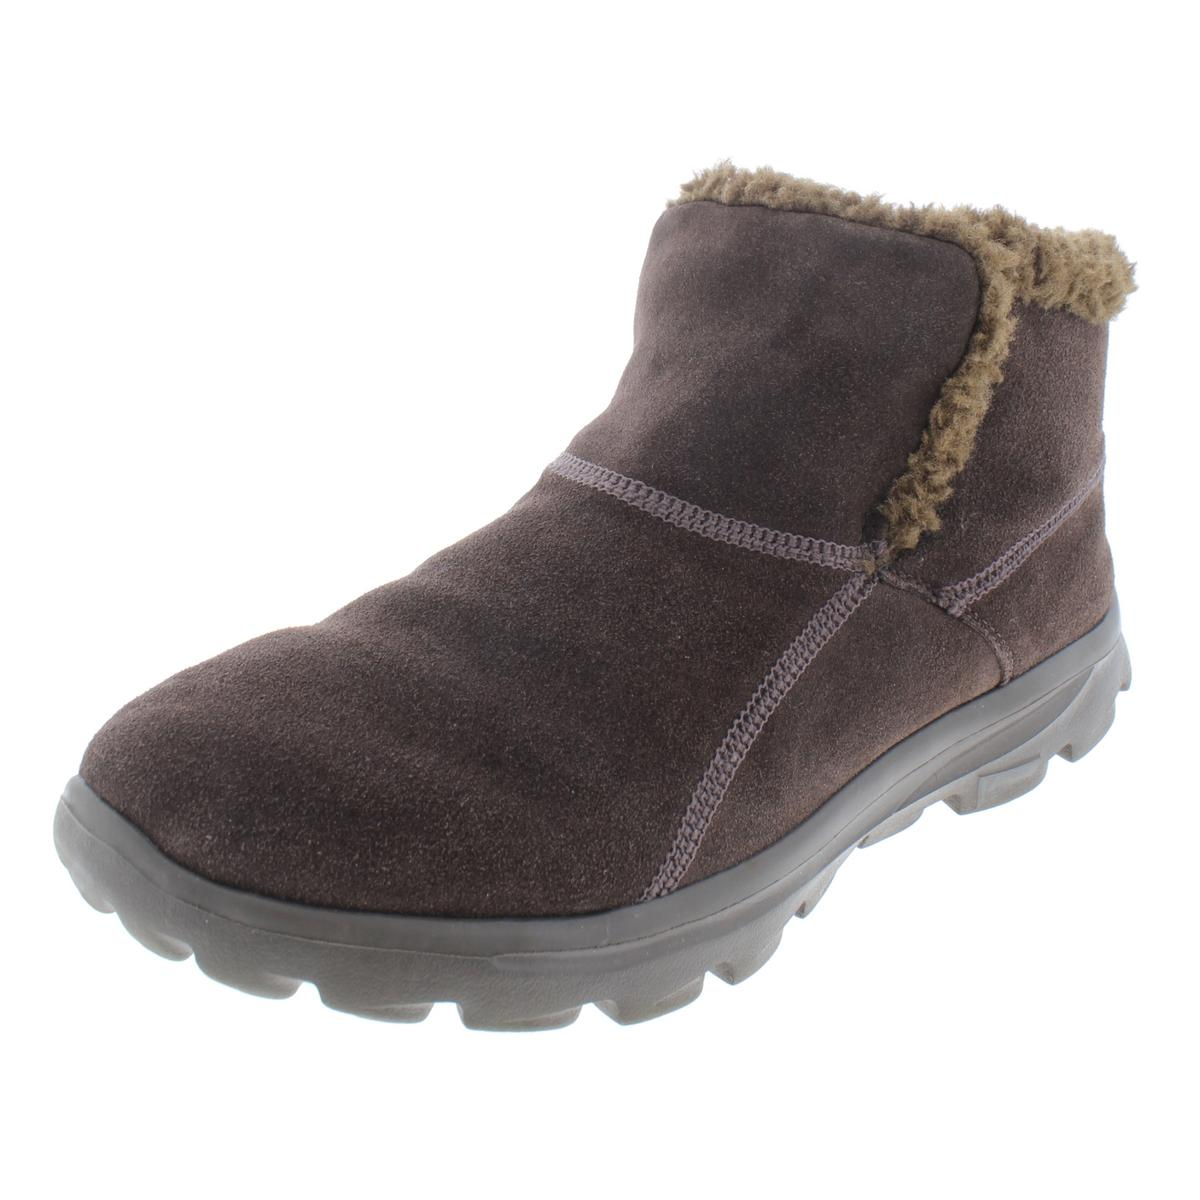 afcc86fec2b Details about Skechers Womens Chugga Imprint Brown Winter Boots 11 Extra  Wide (E+